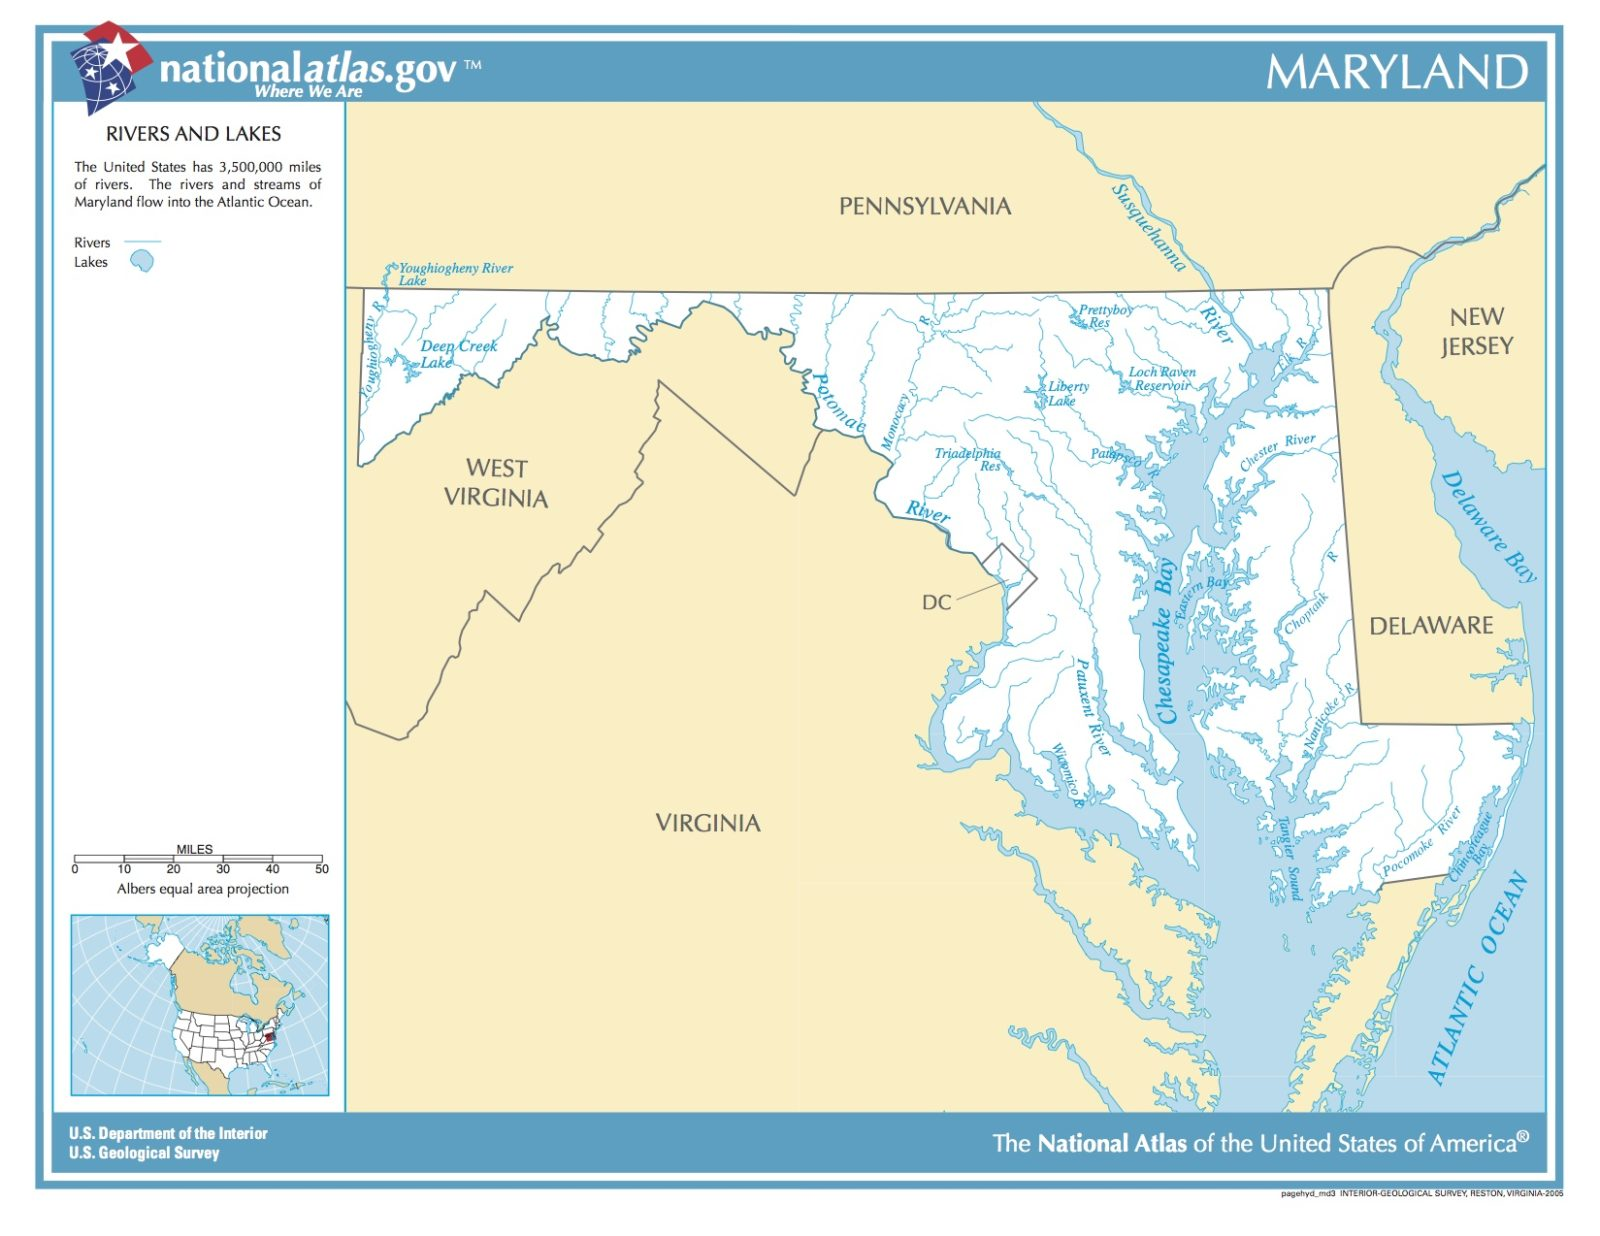 Map of Maryland. Rivers and Lakes.